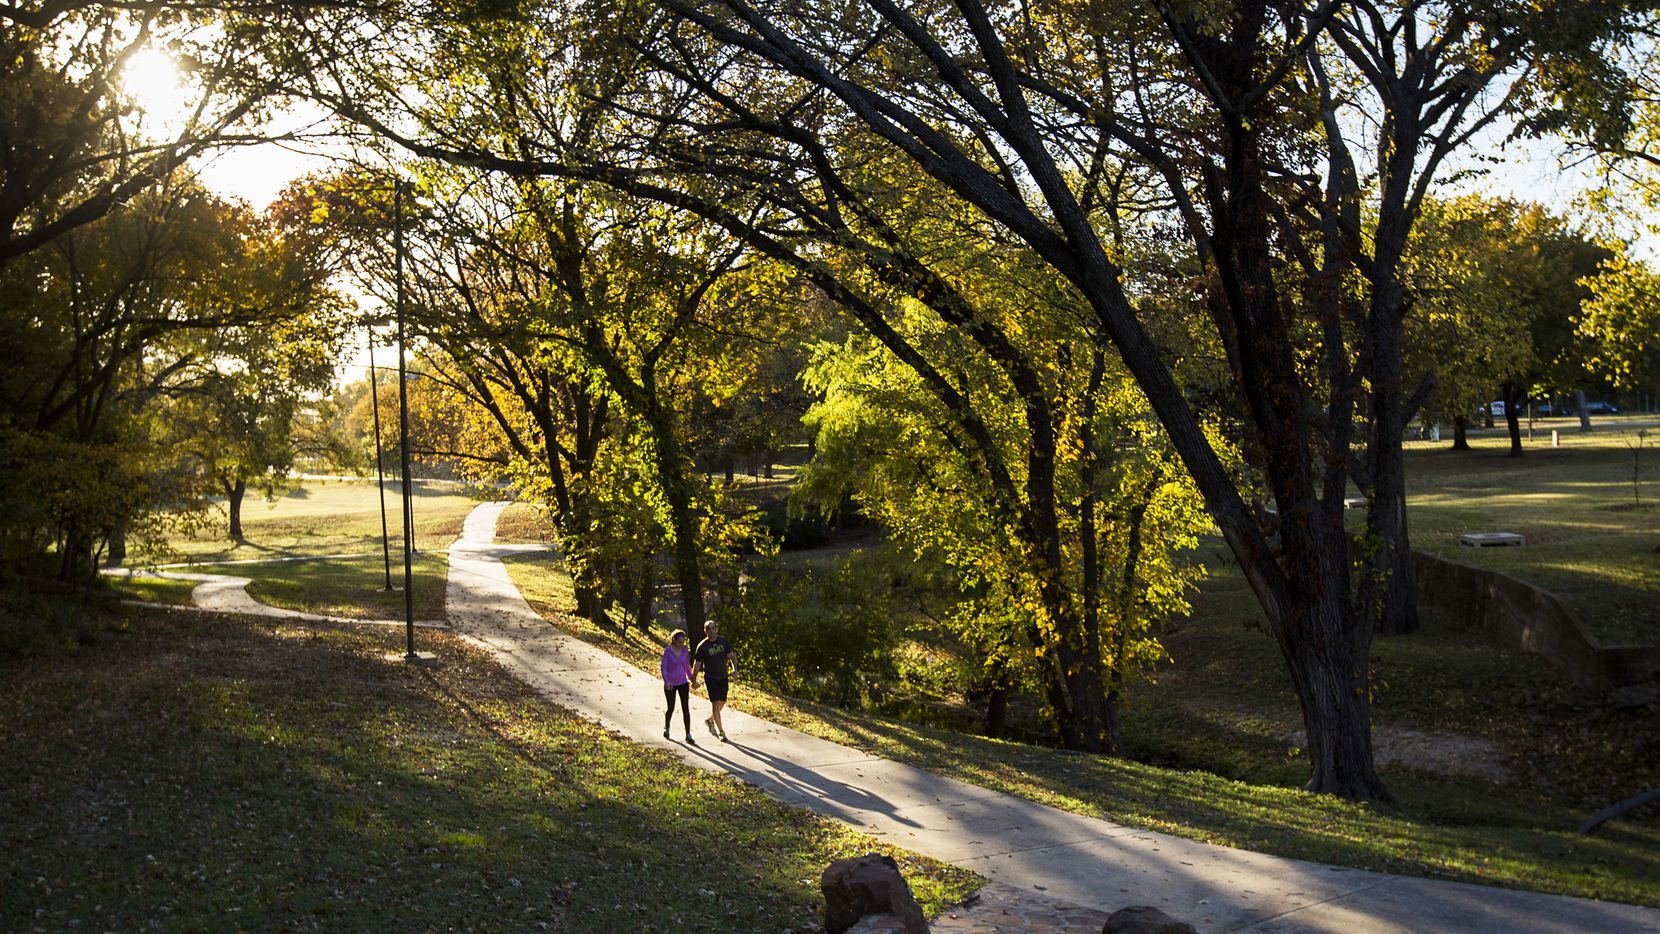 Walkers stroll along the paved trails and historic stonework established during the Works Progress Administration era at Reverchon Park. Staff photograph taken Oct. 20, 2020.